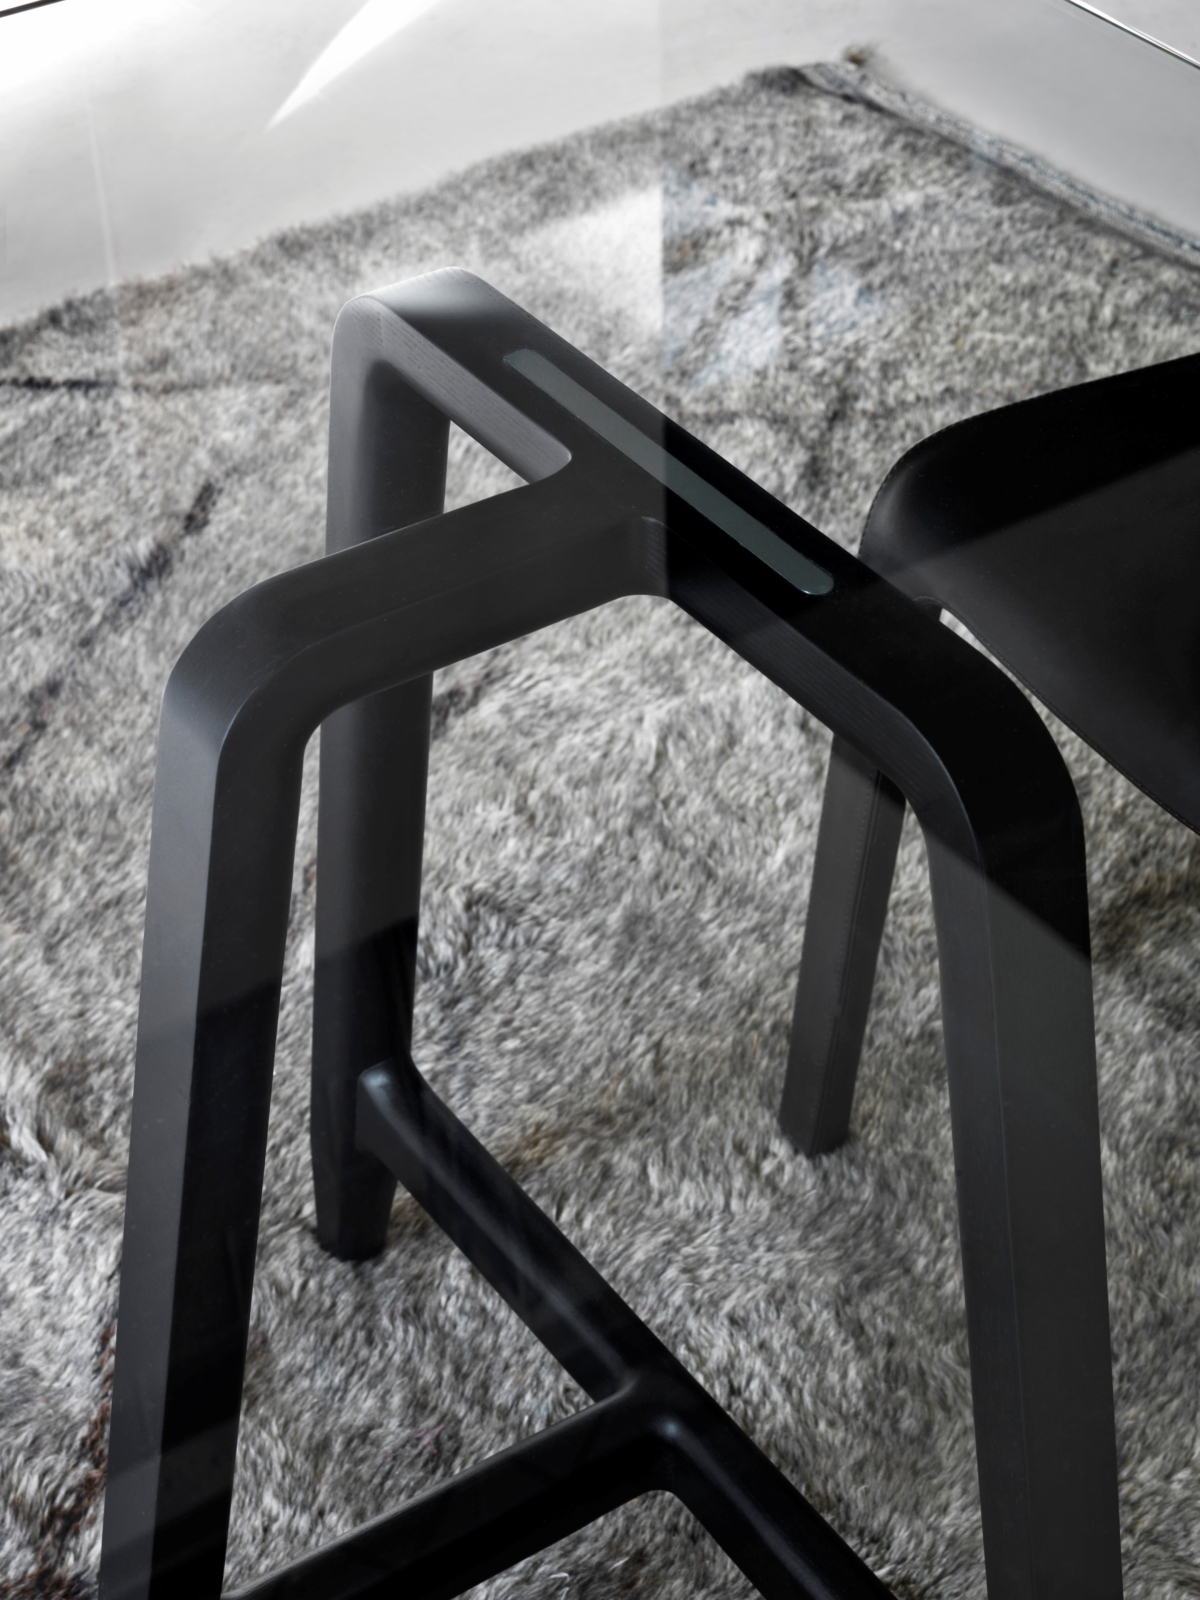 EASEL by L + R Palomba for Driade